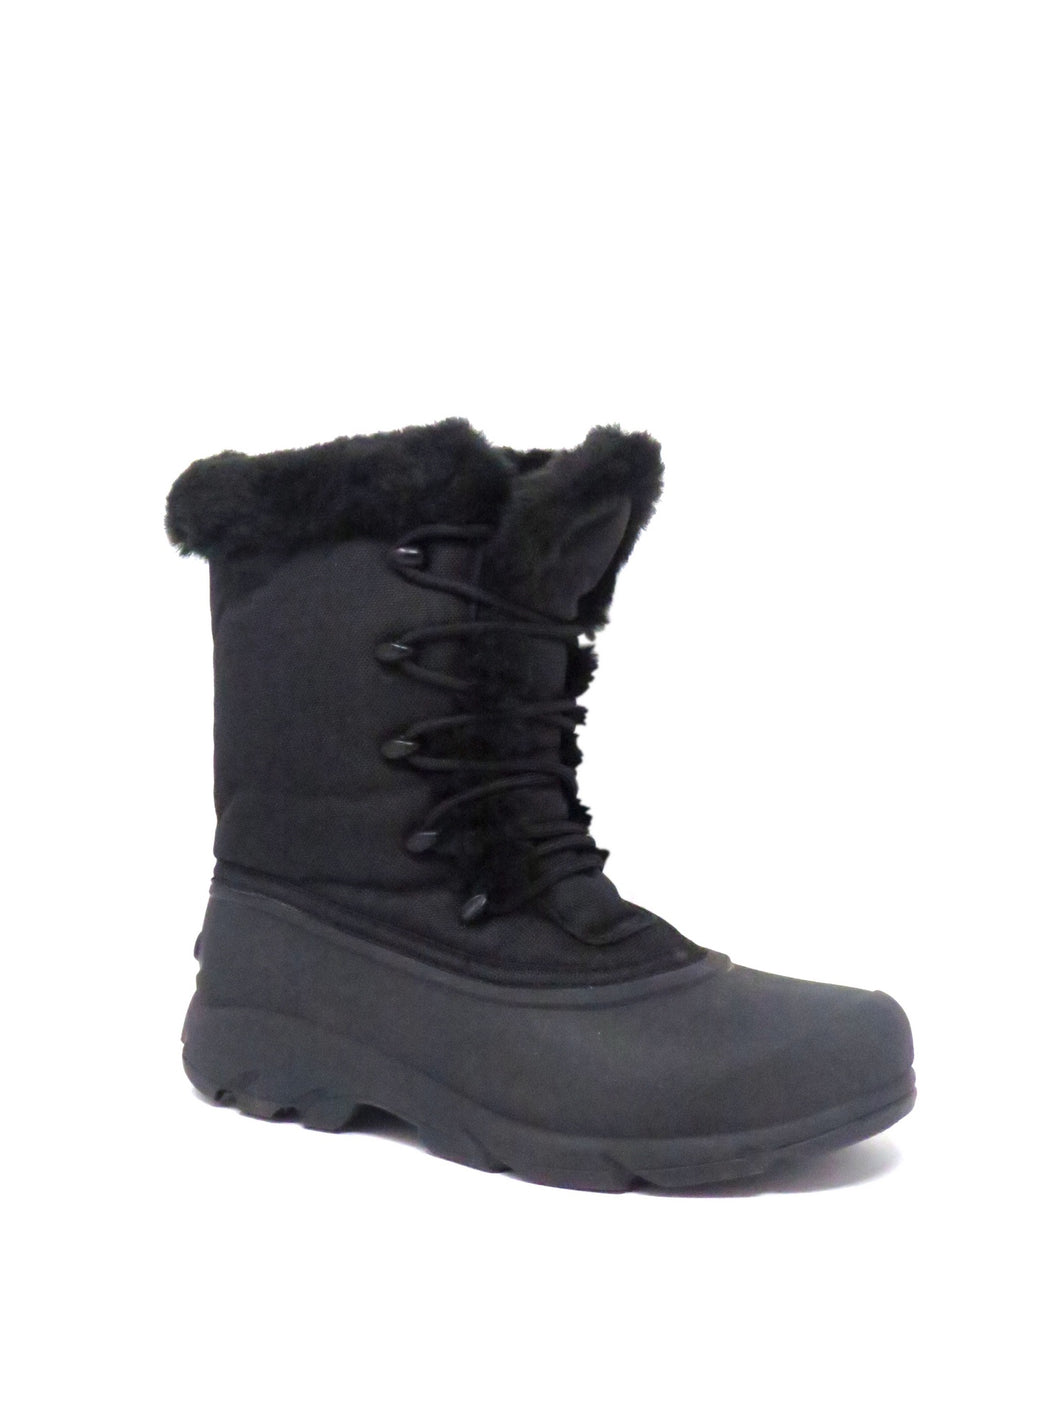 Sorel | NL1930-010 | Snow Eagle | Black